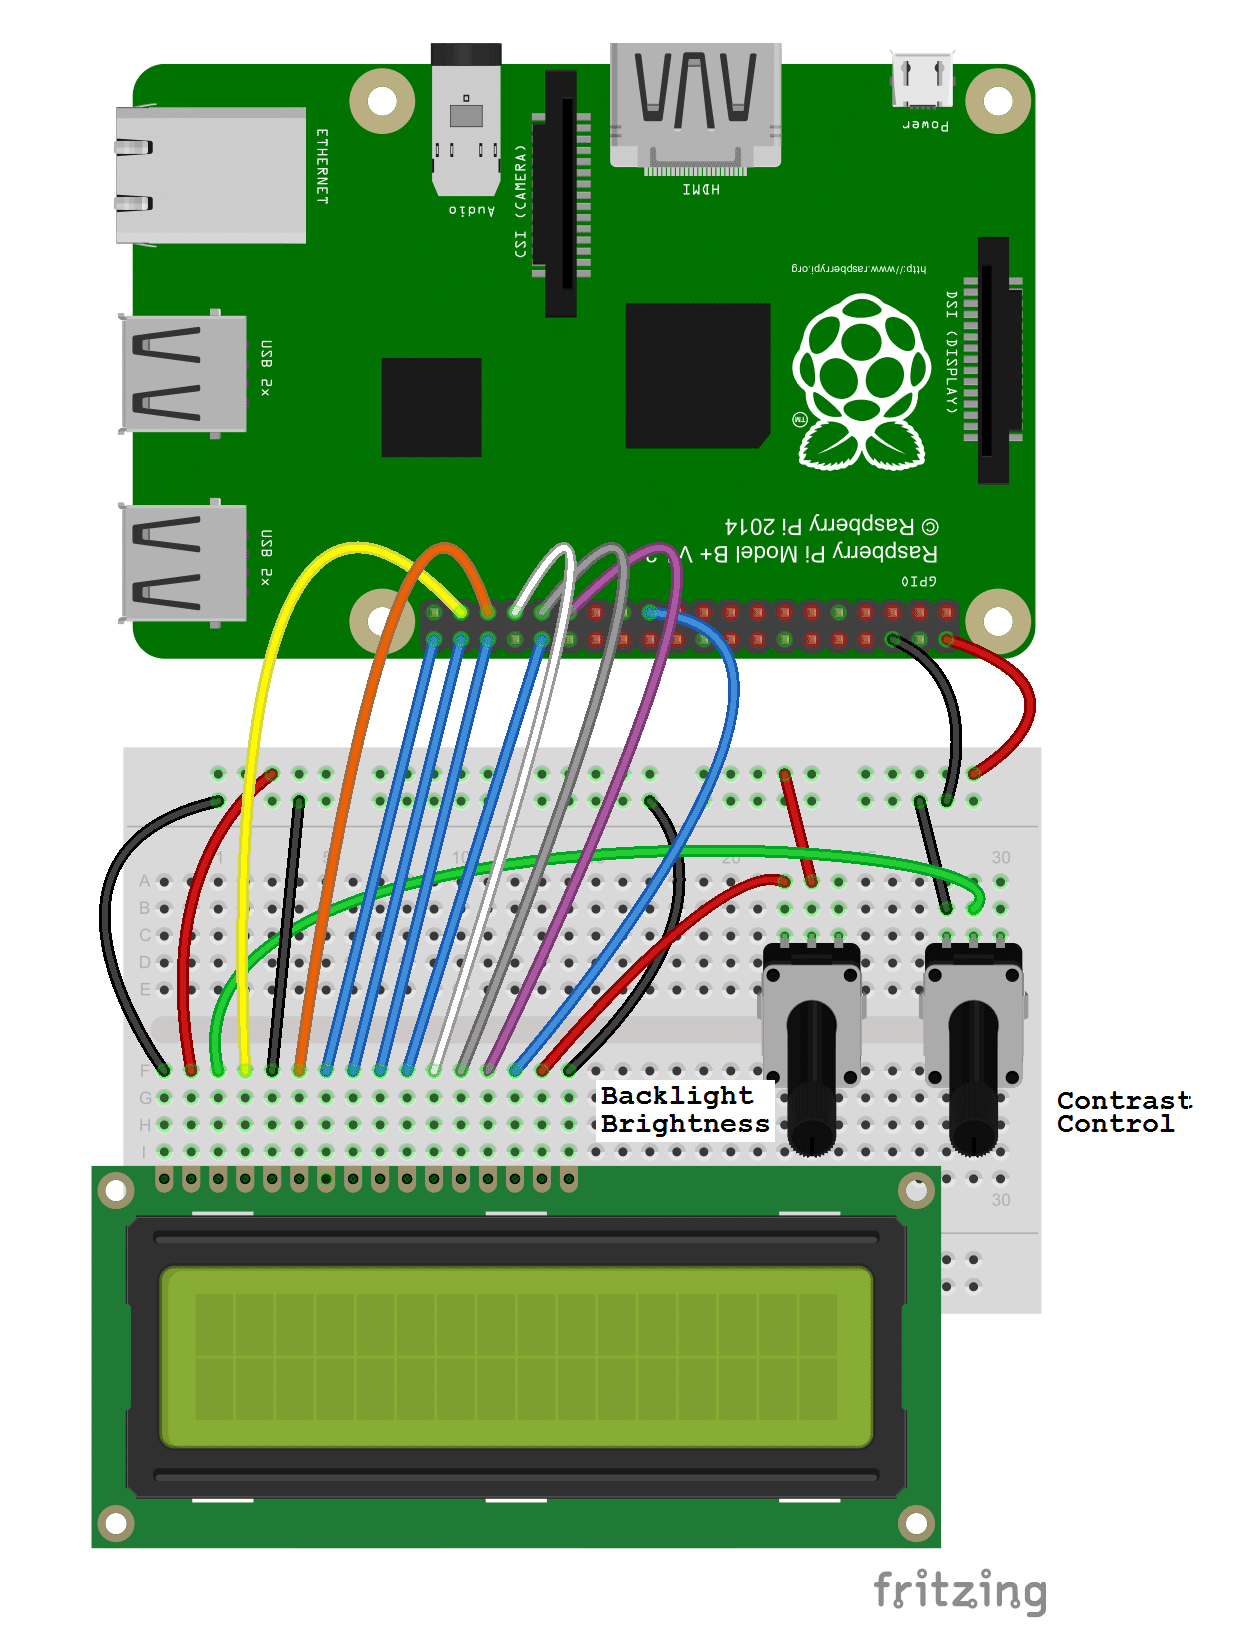 How To Setup An Lcd On The Raspberry Pi And Program It With Python 6 Pin Wiring Diagrams Briggs 8 Bit Mode Connection Diagram